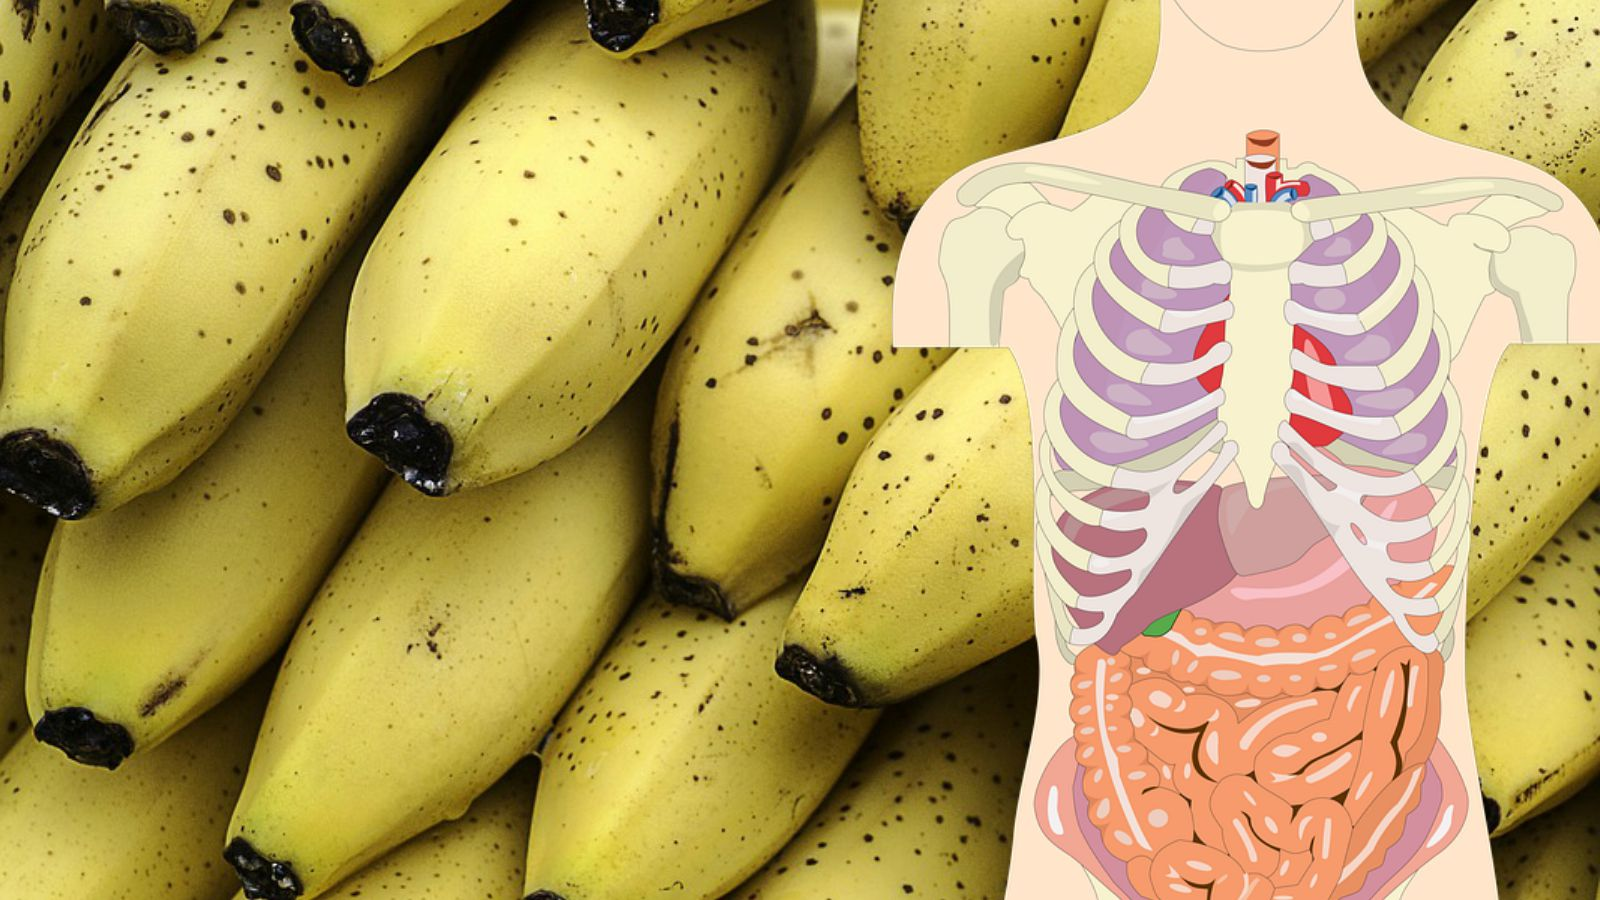 9 Surprising Health Benefits of Eating Overripe Bananas.